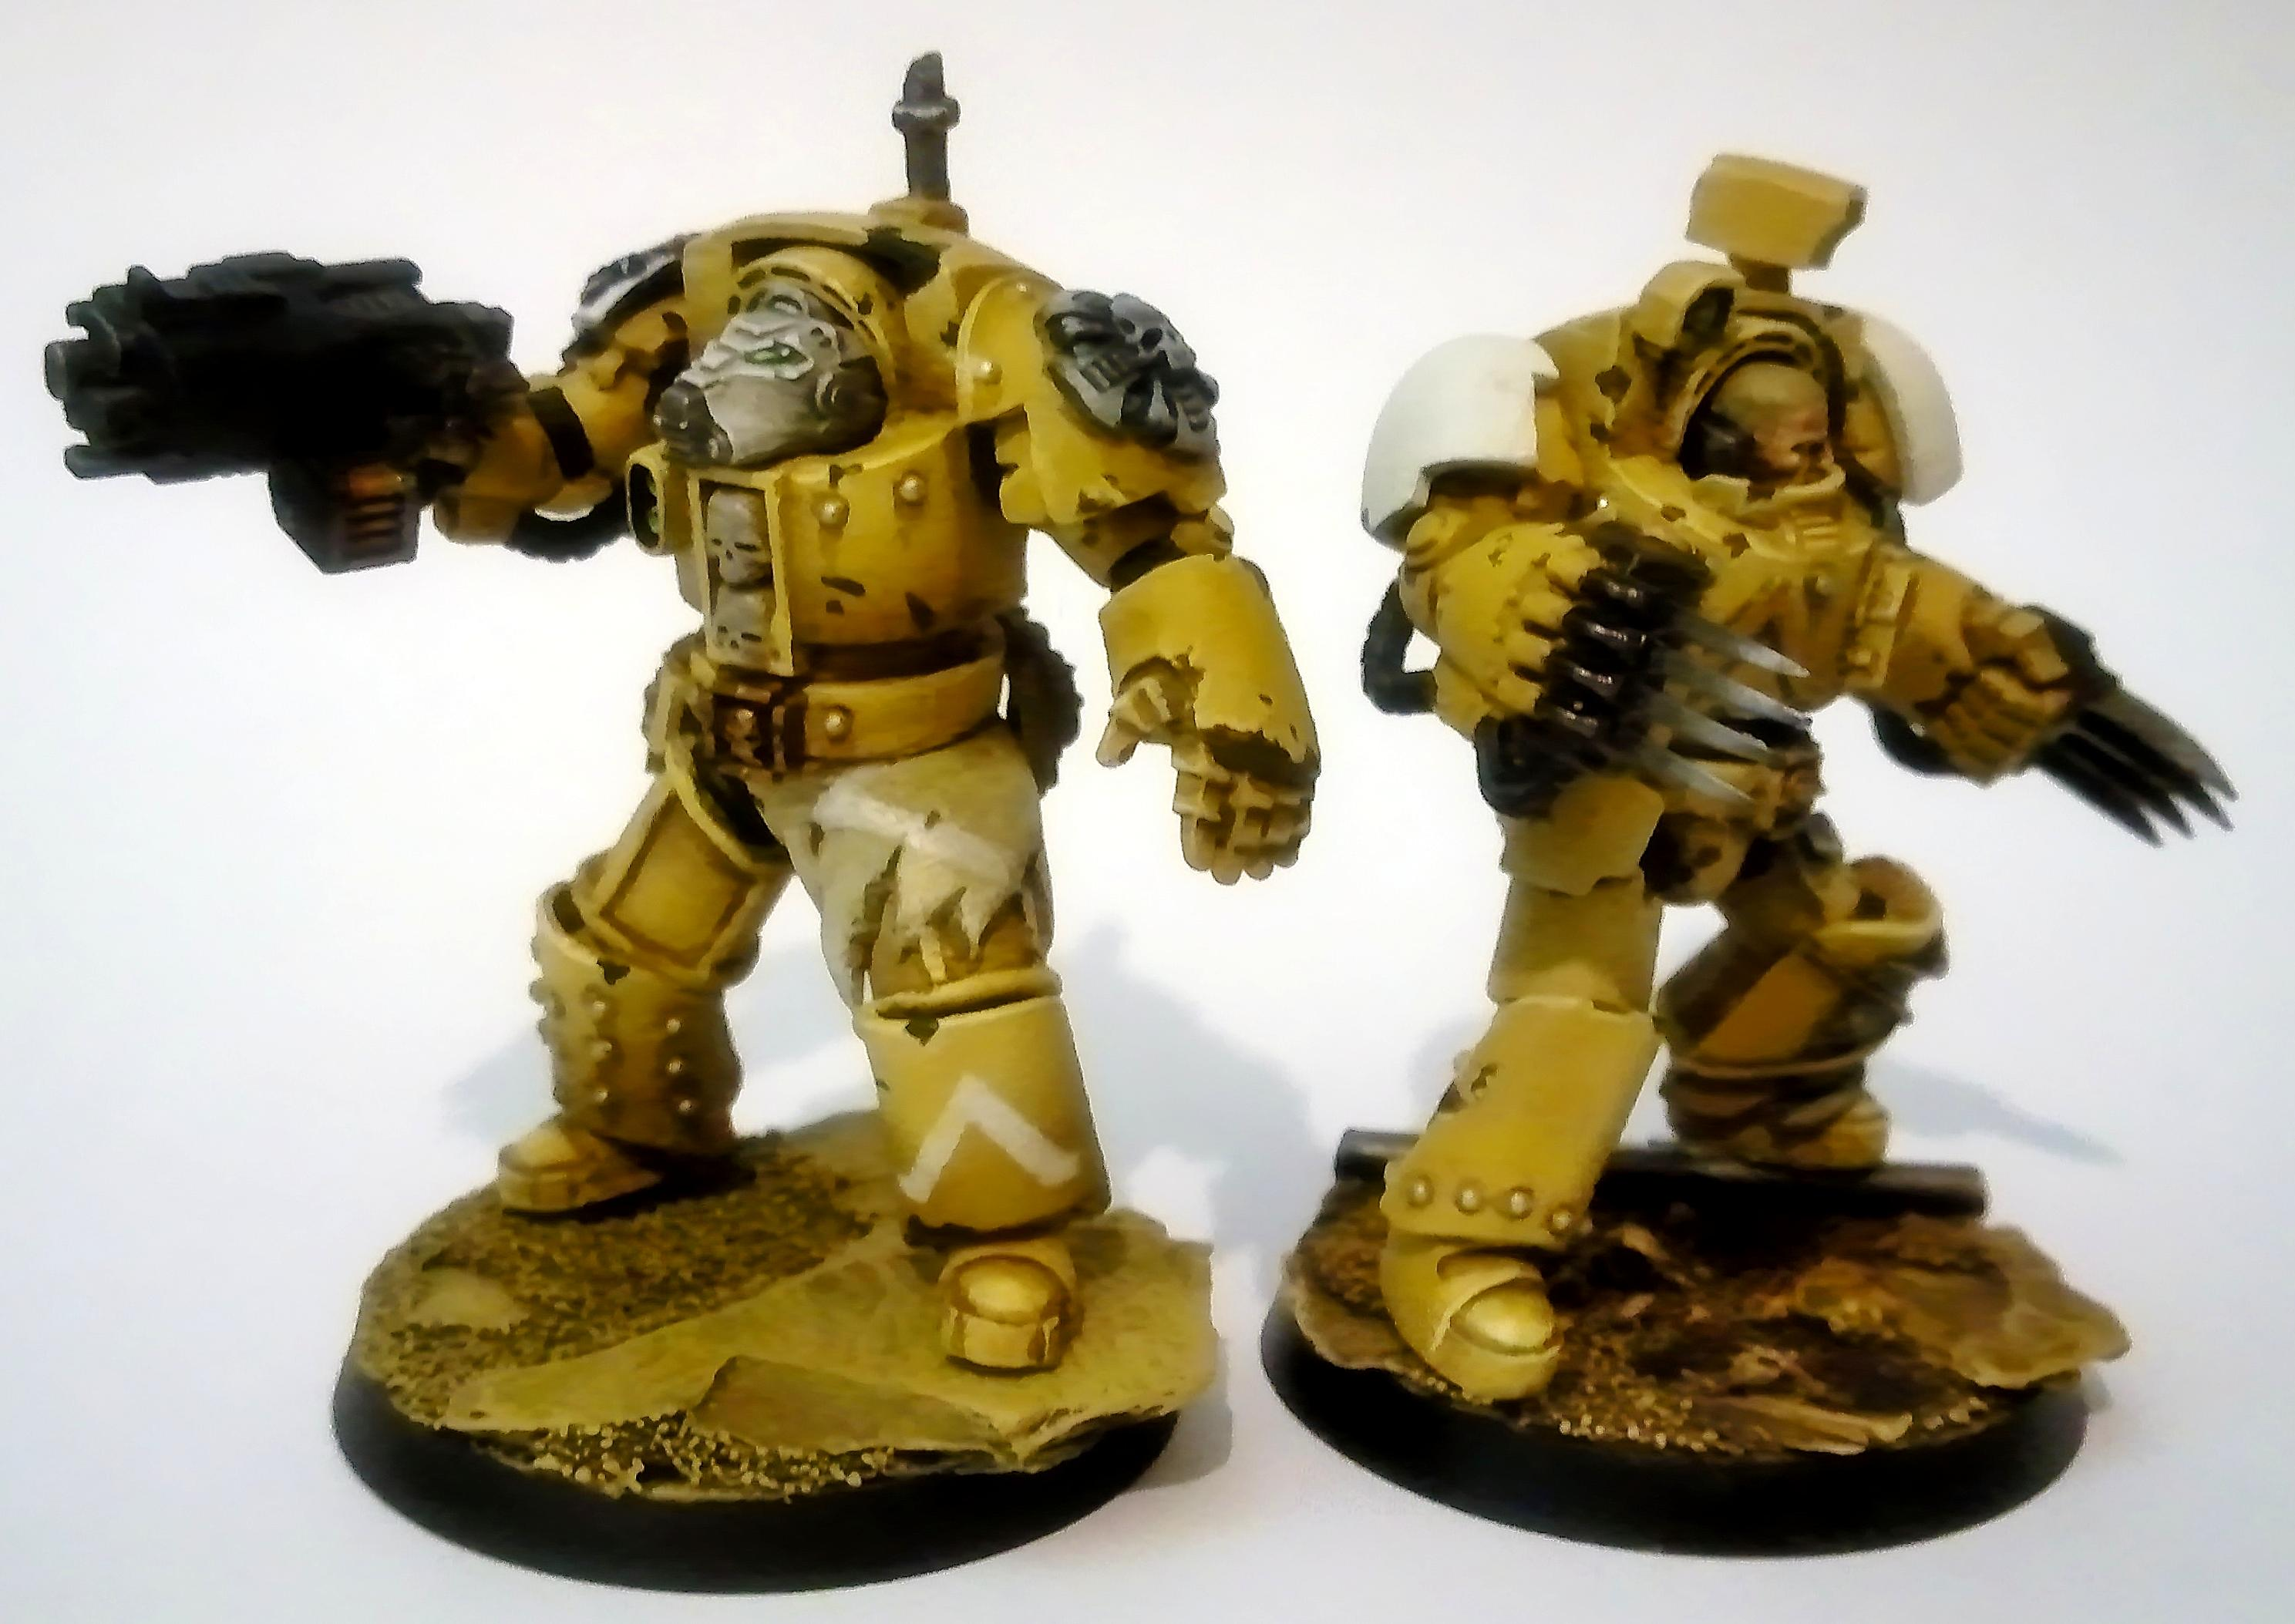 Conversion, Lightning Claw, Power Fist, Space Marines, Storm Bolter, Terminator Armor, True Scale, Yellow